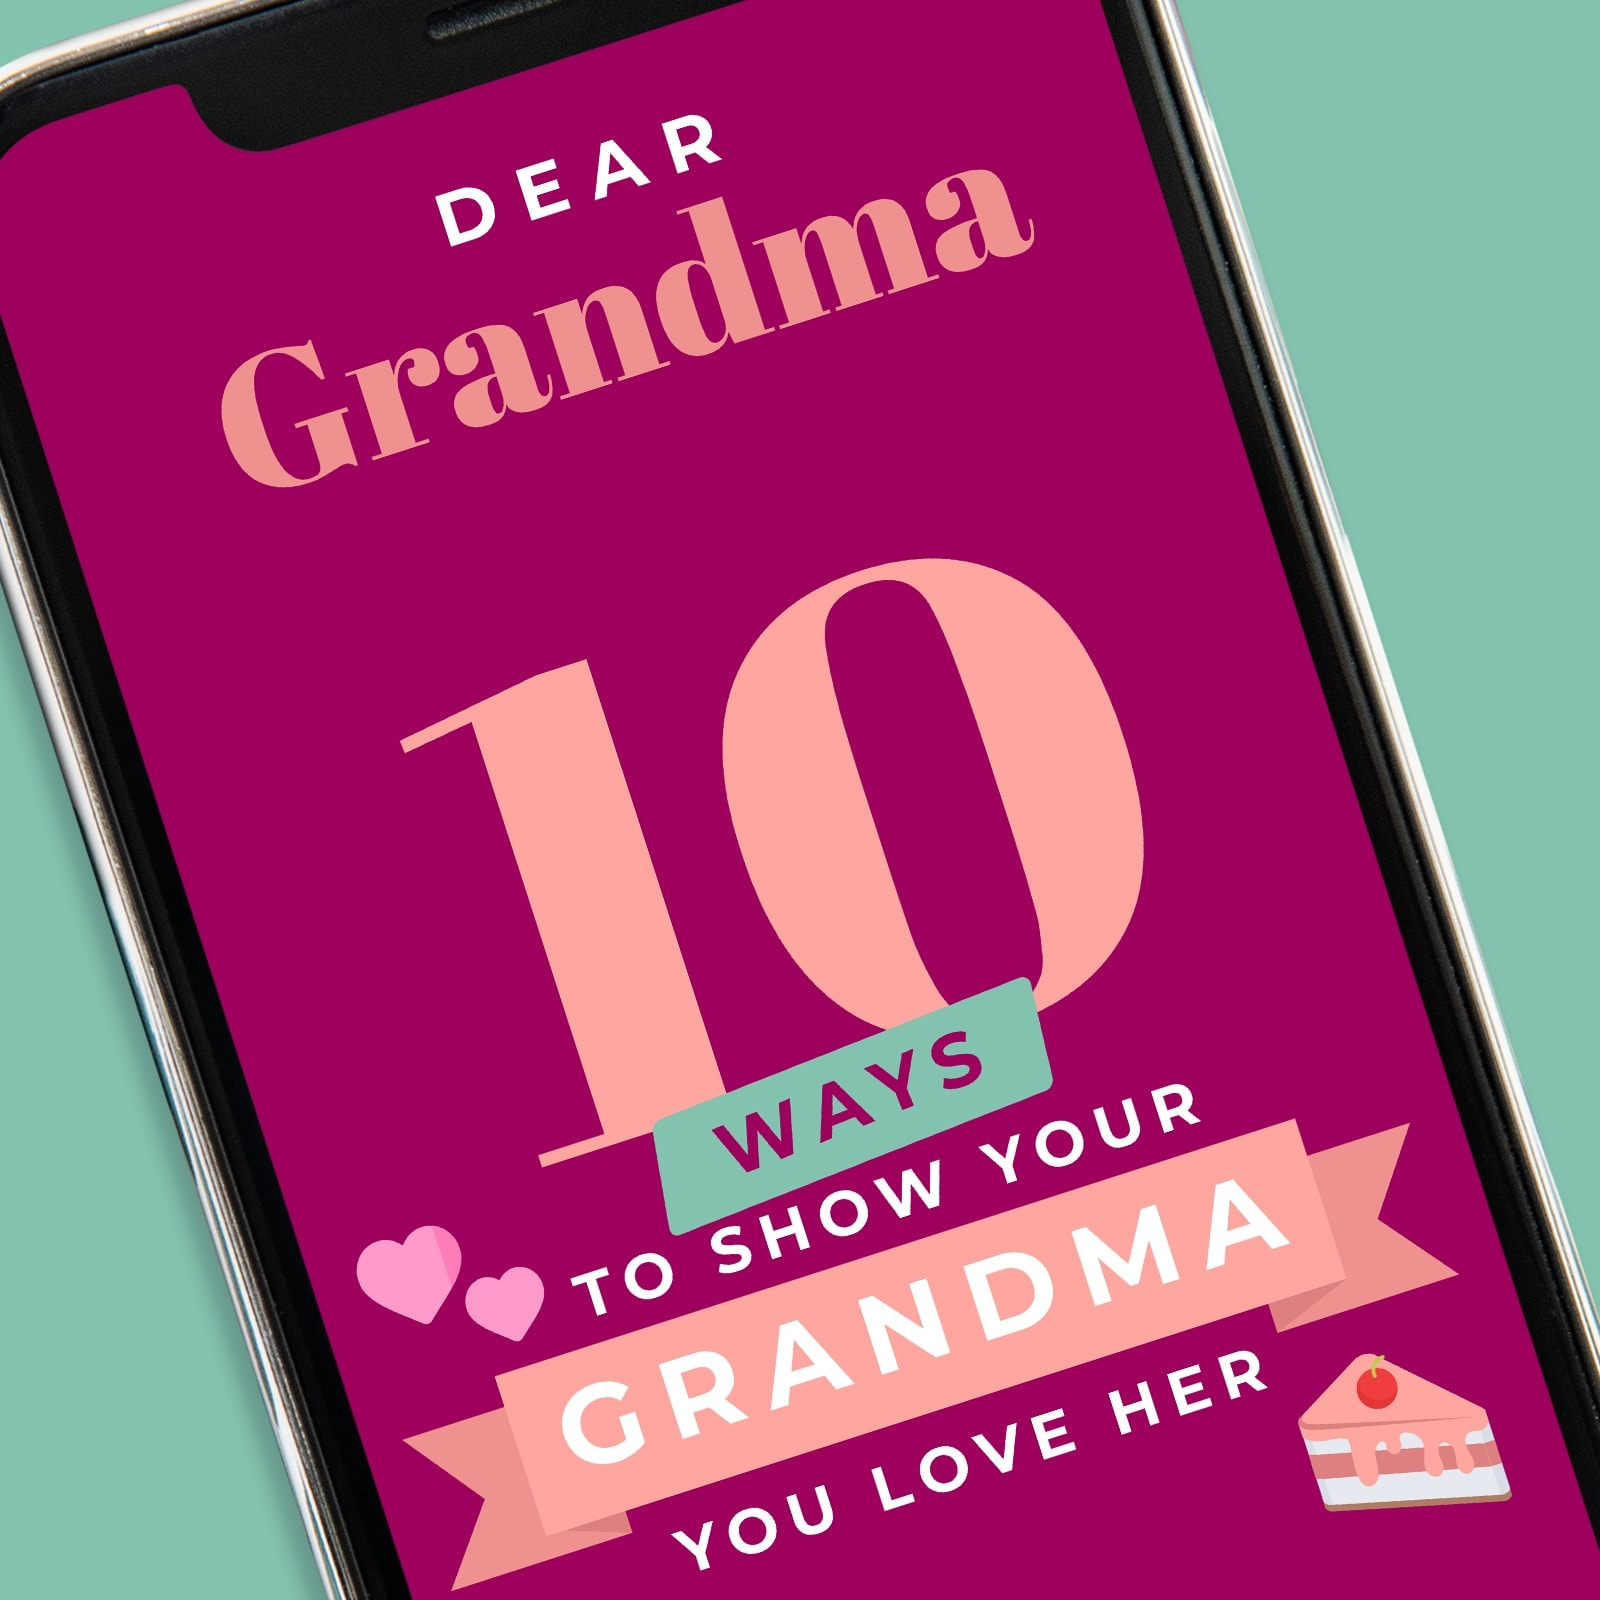 Dear Grandma app graphic